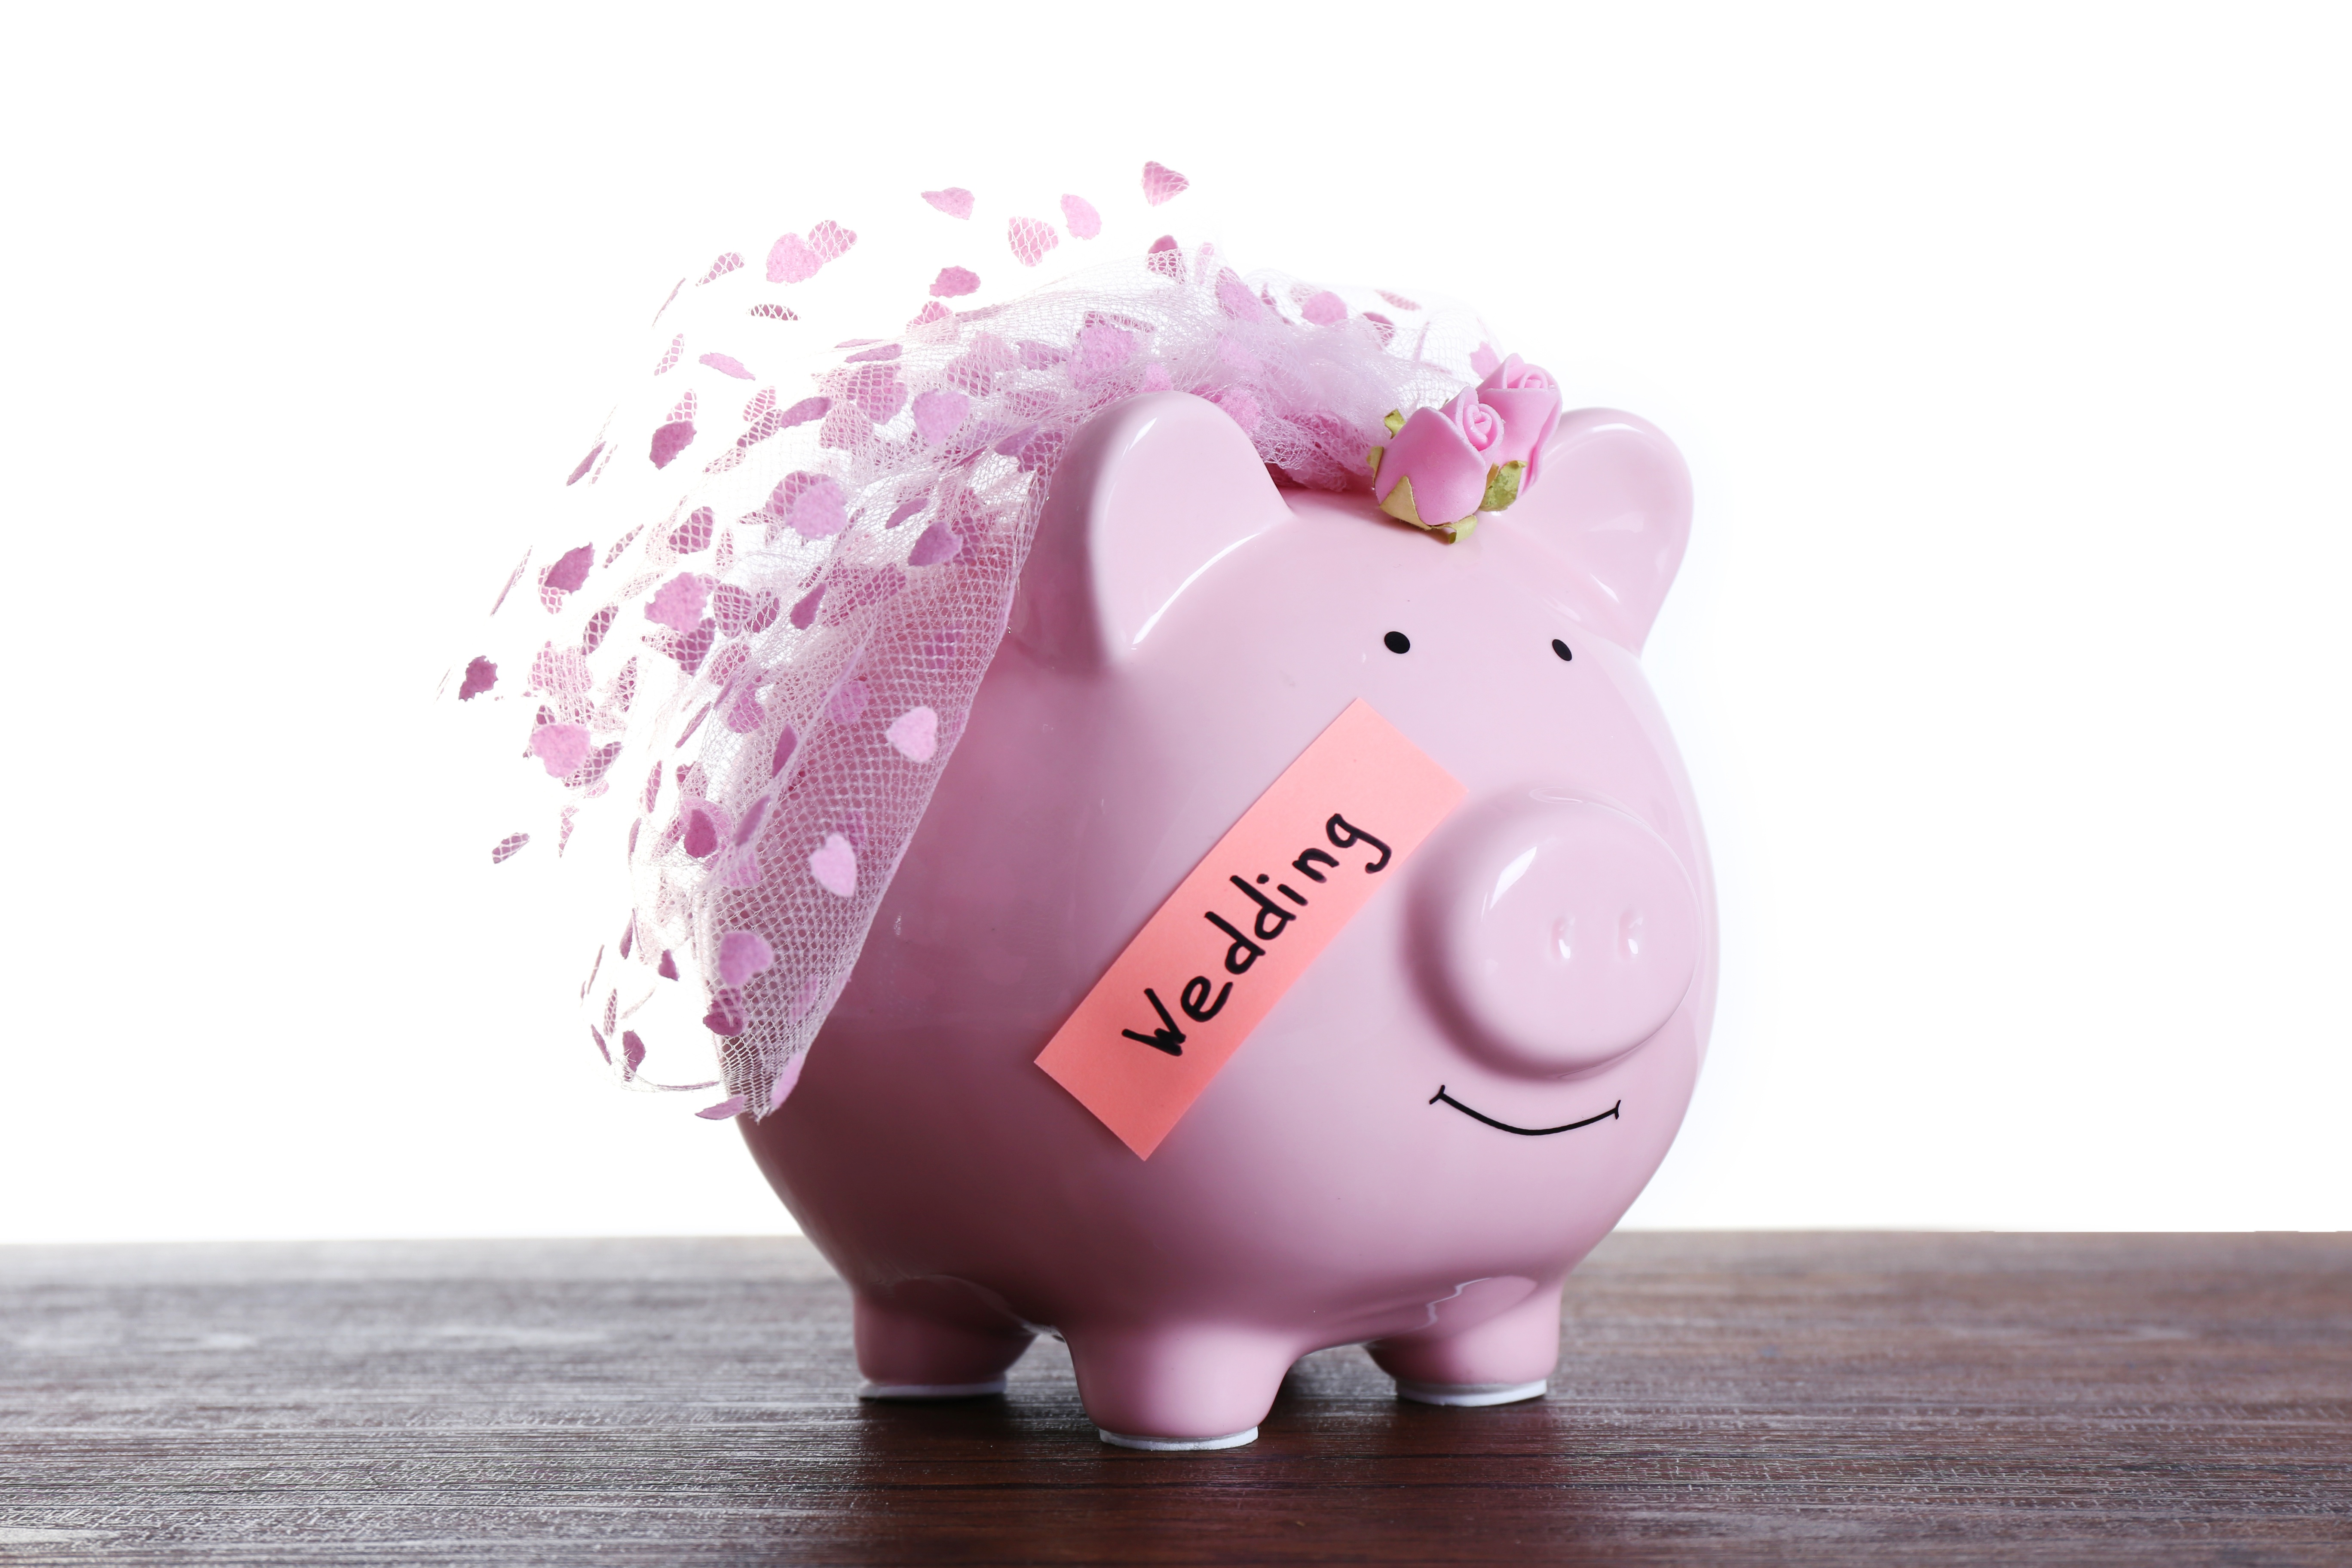 9 Mistakes You Will Make When Budgeting For Your Wedding